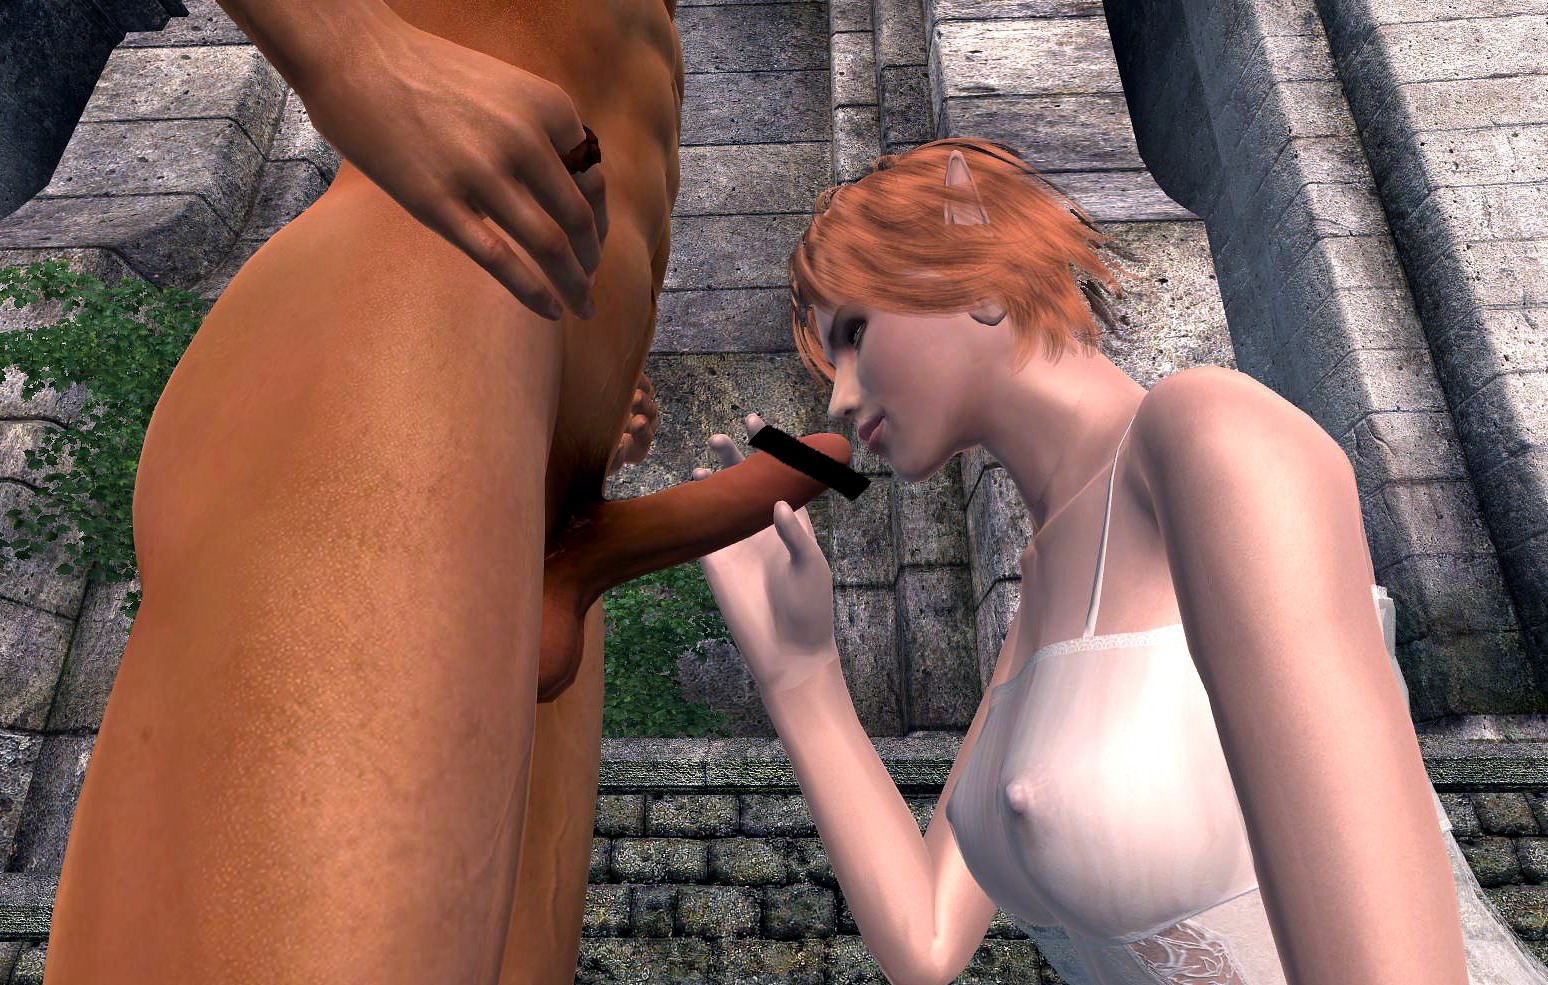 Oblivion mods erotic dance erotica girl